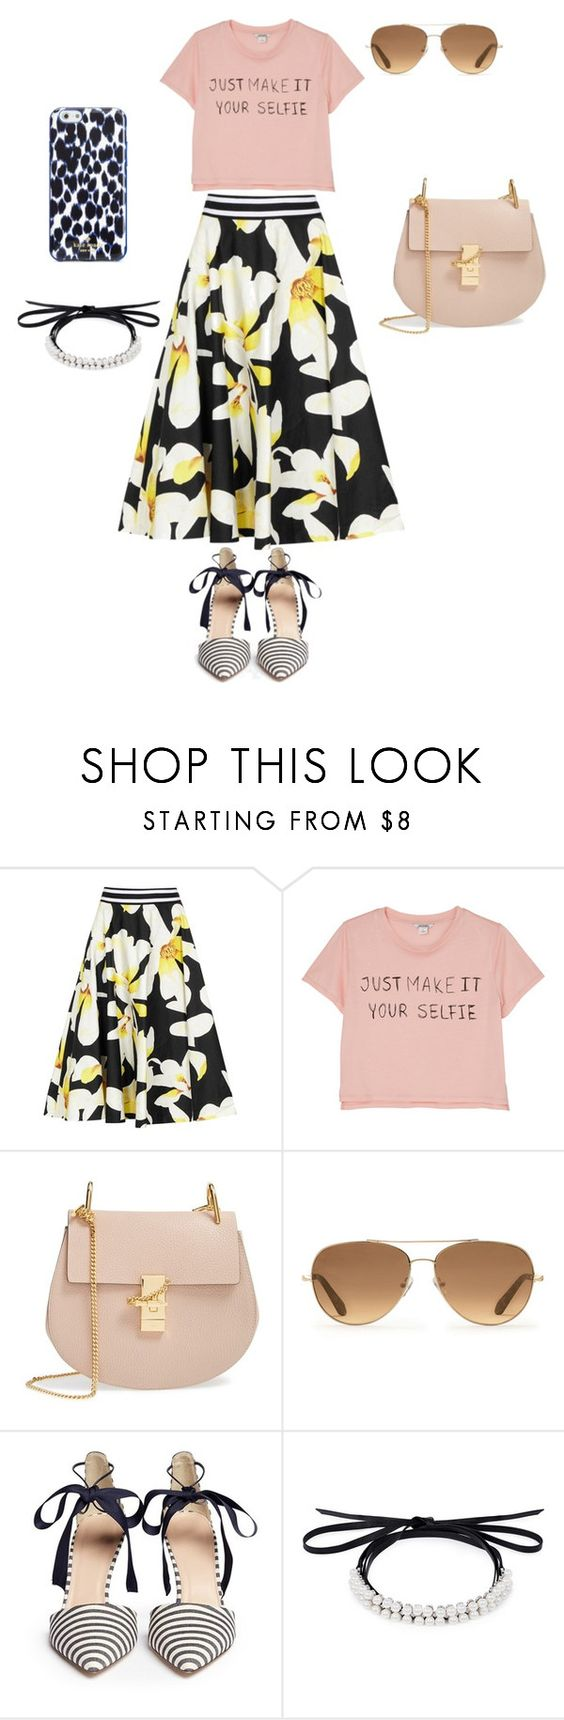 """""""Untitled #49"""" by koalabeer12 ❤ liked on Polyvore featuring Alice + Olivia, Monki, Chloé, Stella & Dot, J.Crew, Fallon and Kate Spade"""